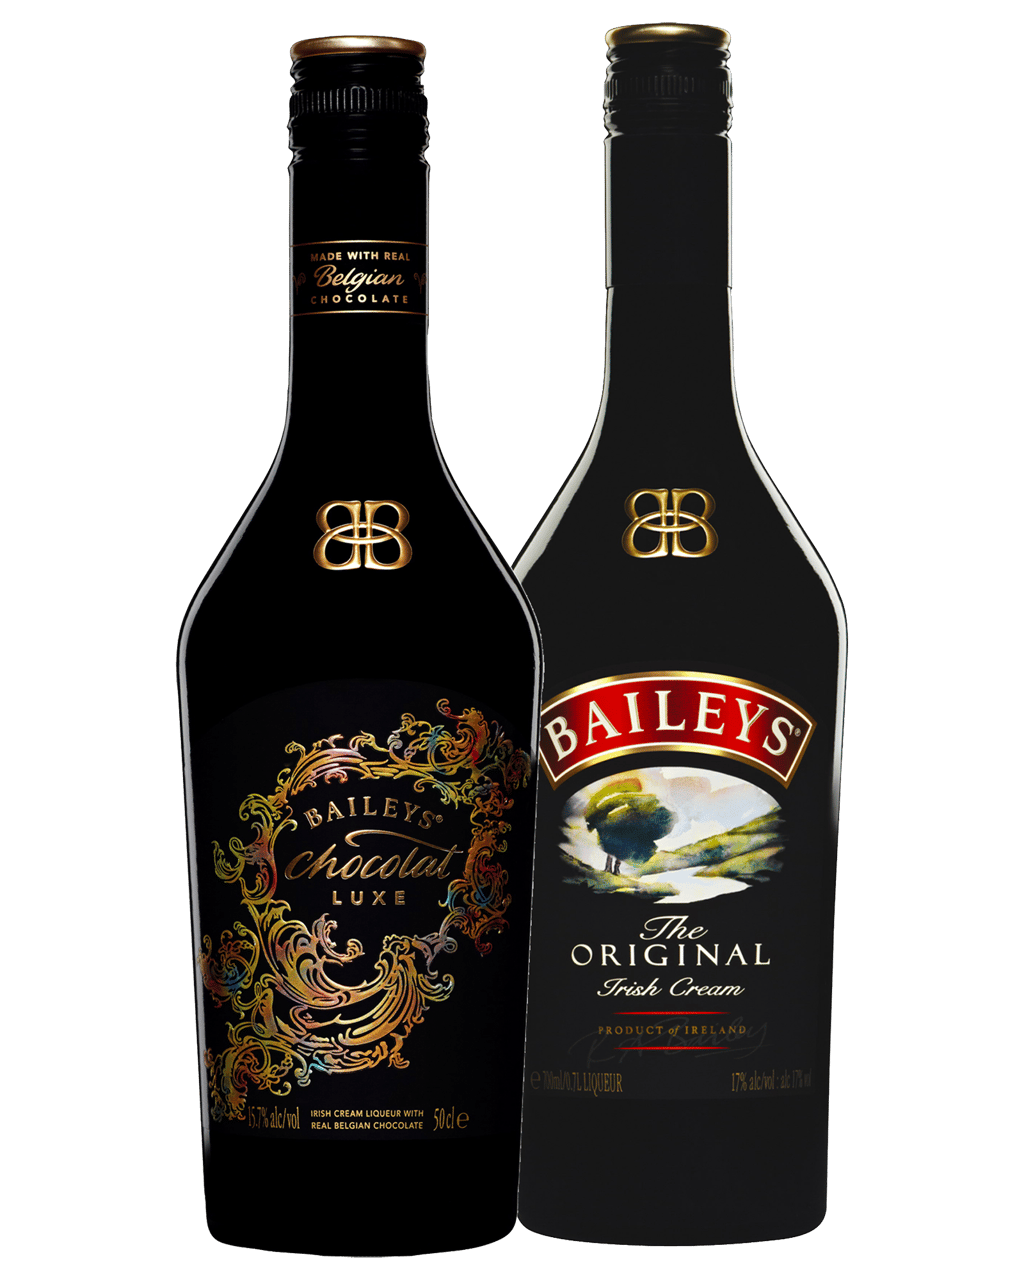 Baileys Chocolat Luxe 500mL & Irish Cream 700mL